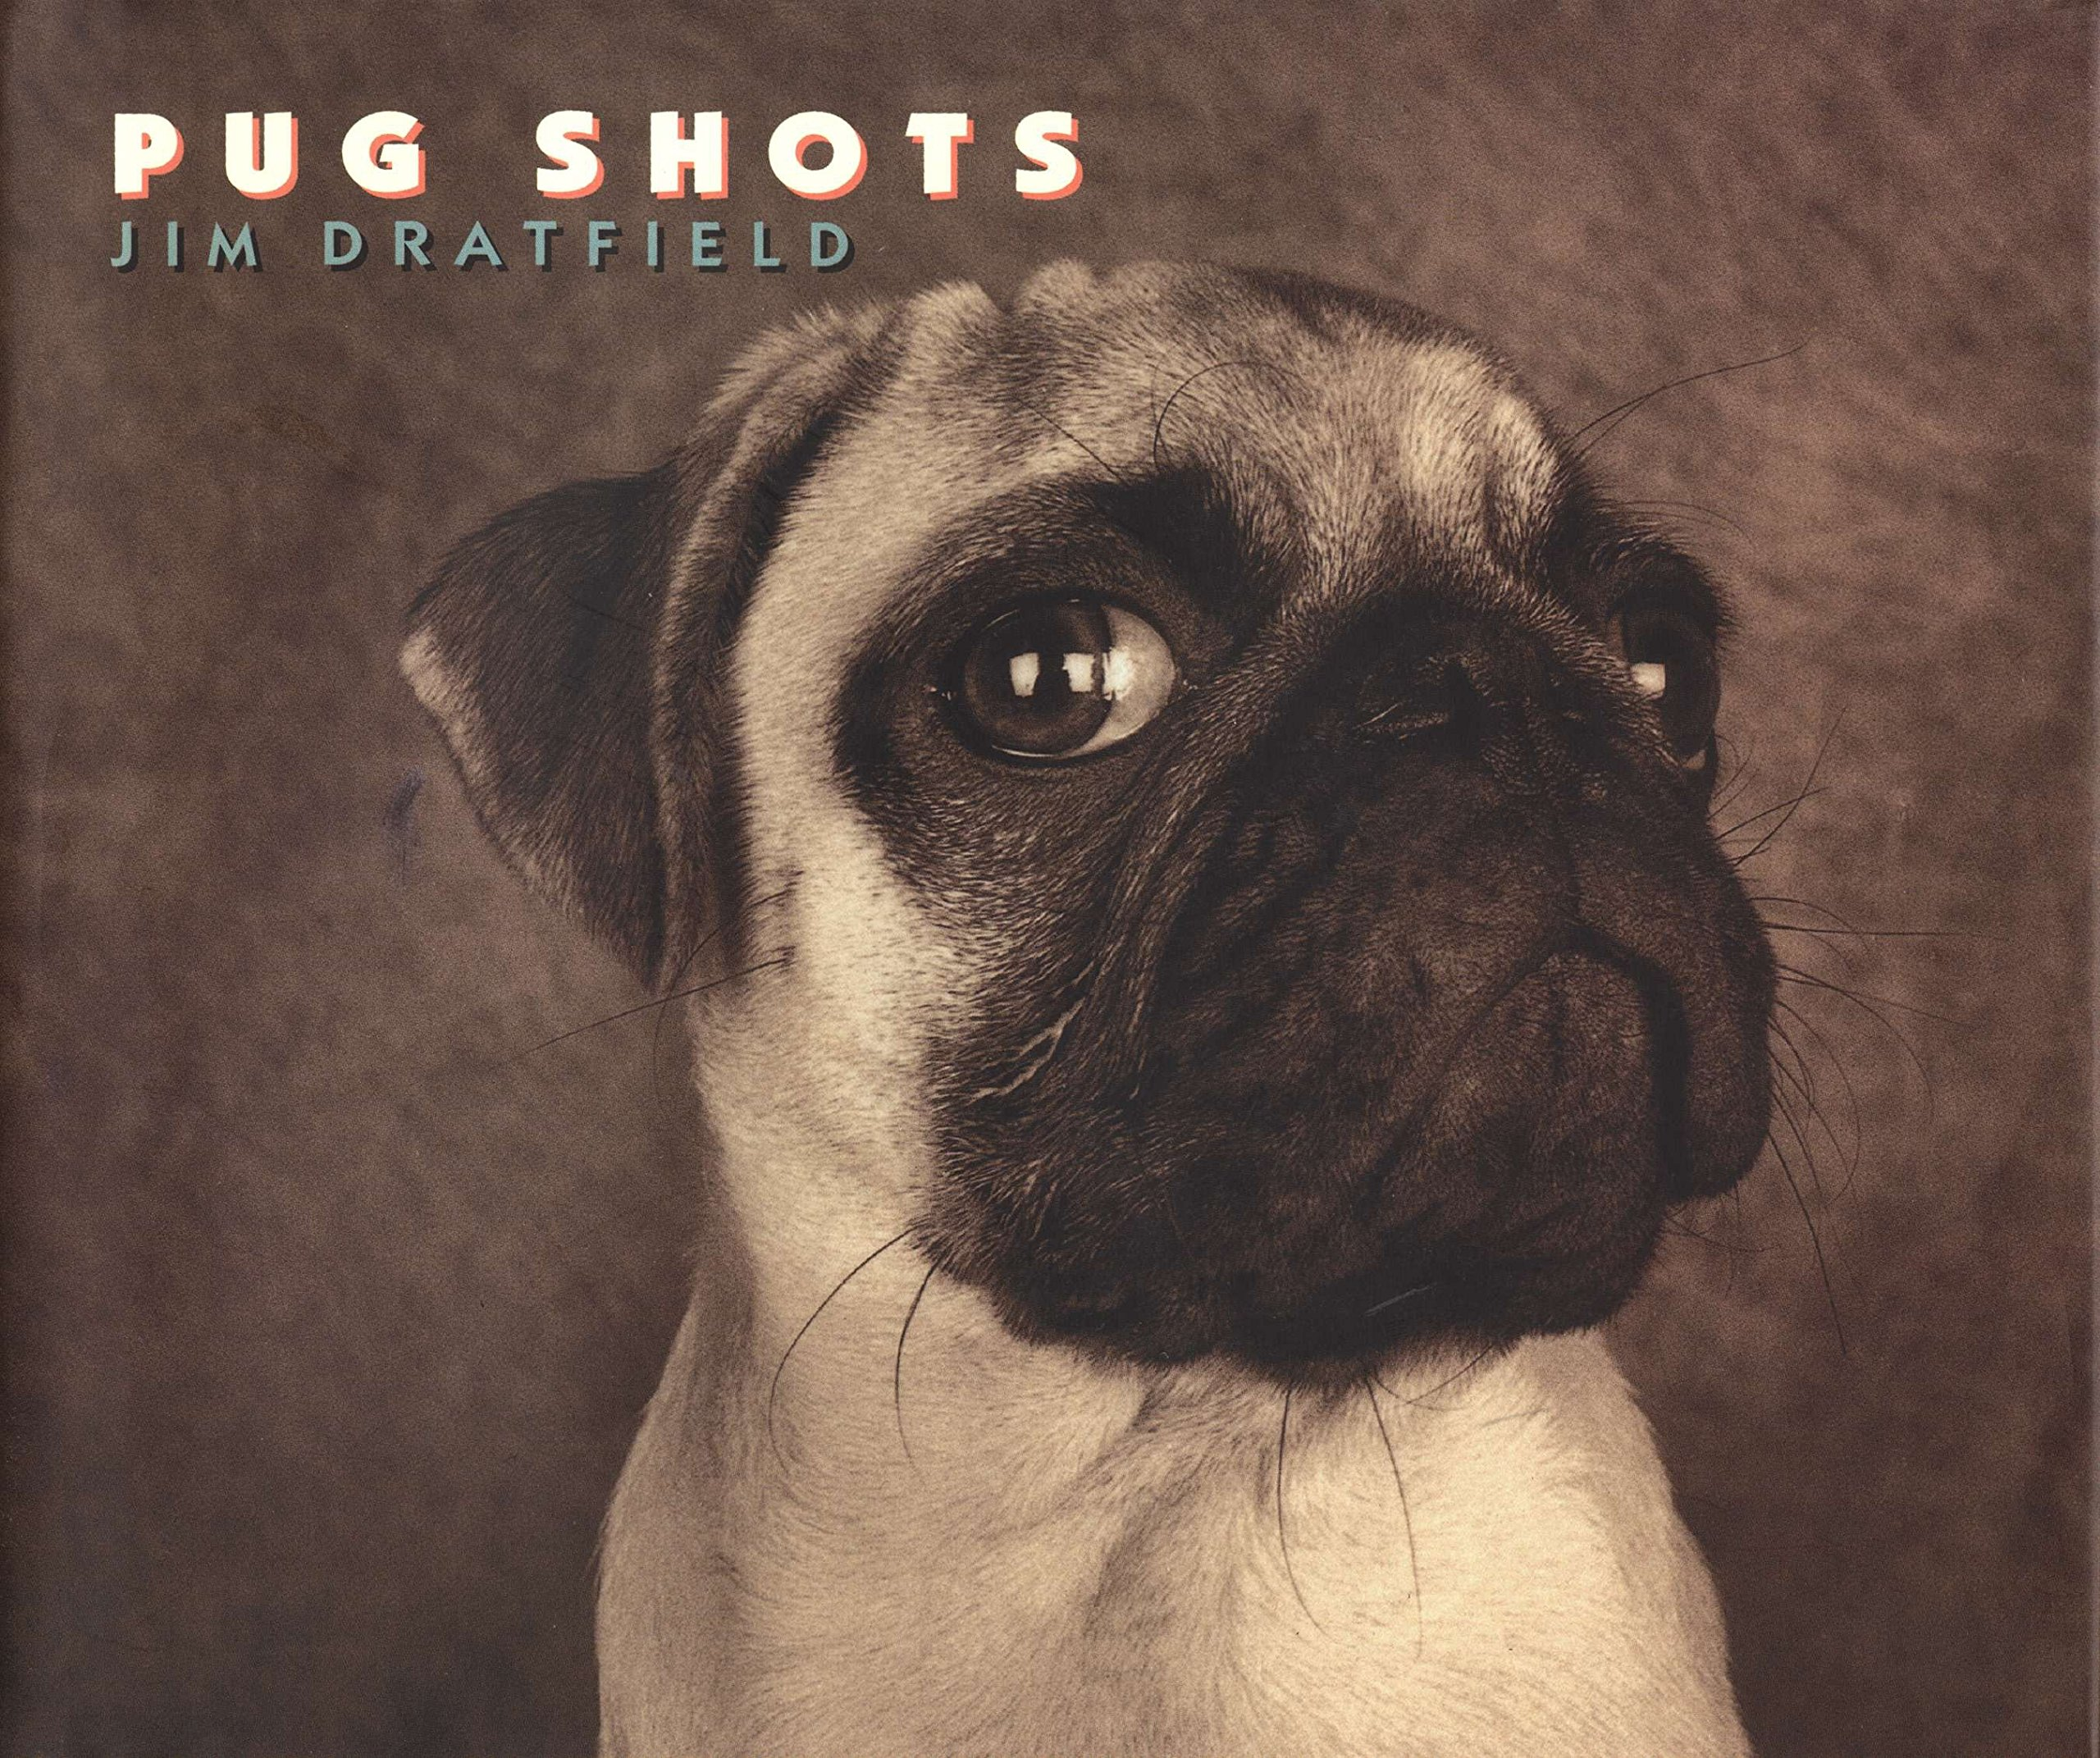 Pug Shots Dratfield Jim 9780670887262 Books